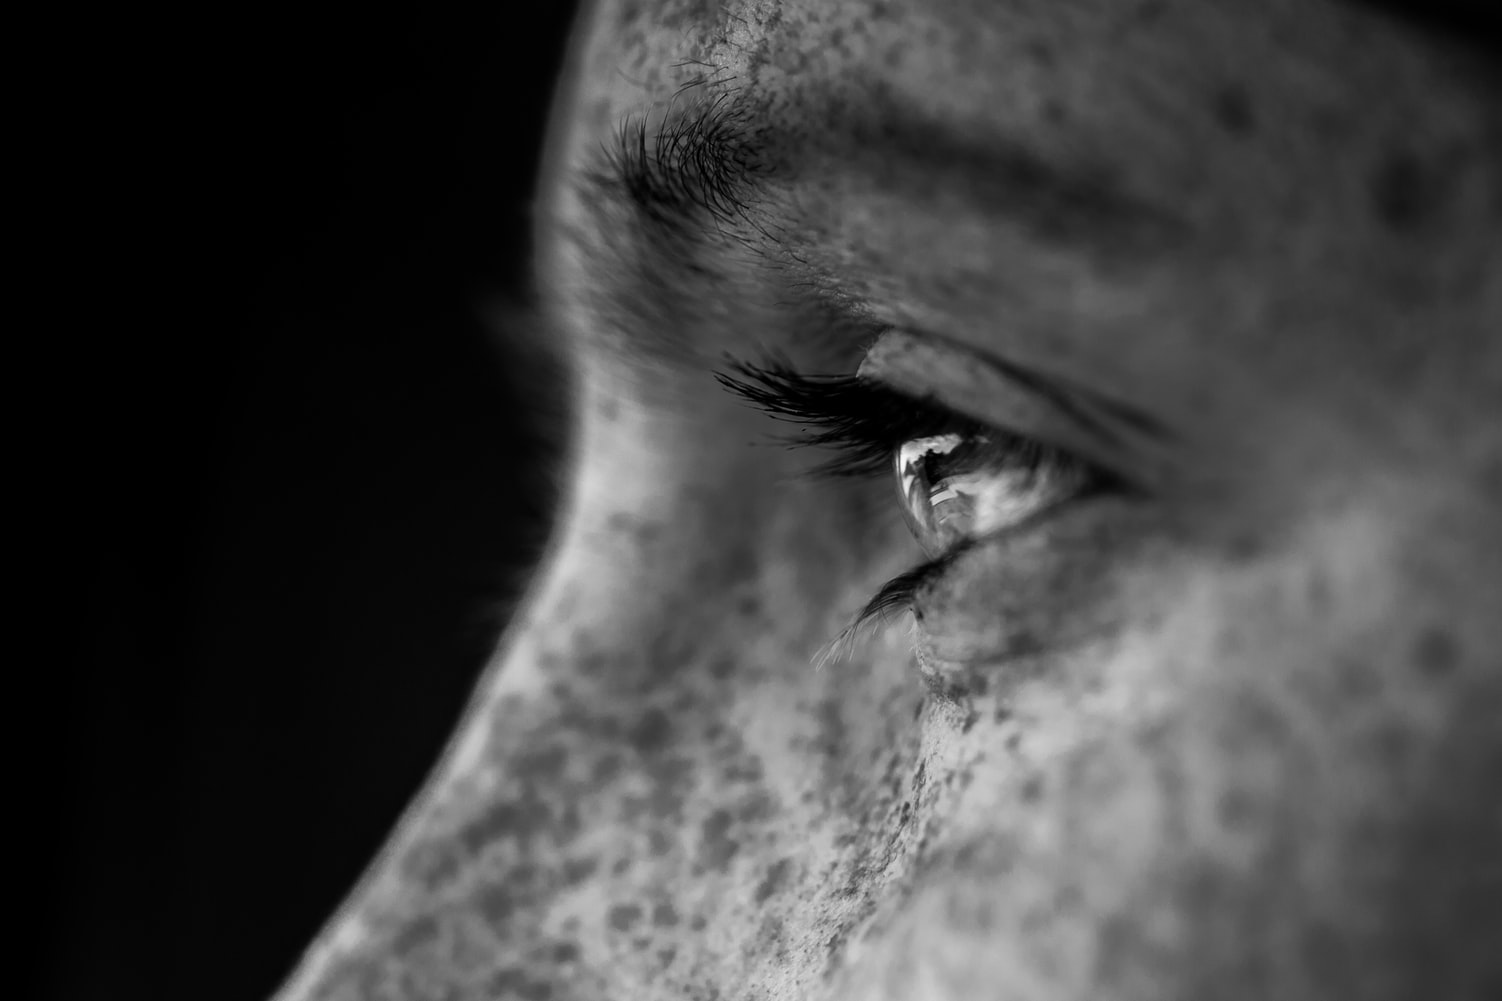 Grayscale photo of motivated person's face after waking up early